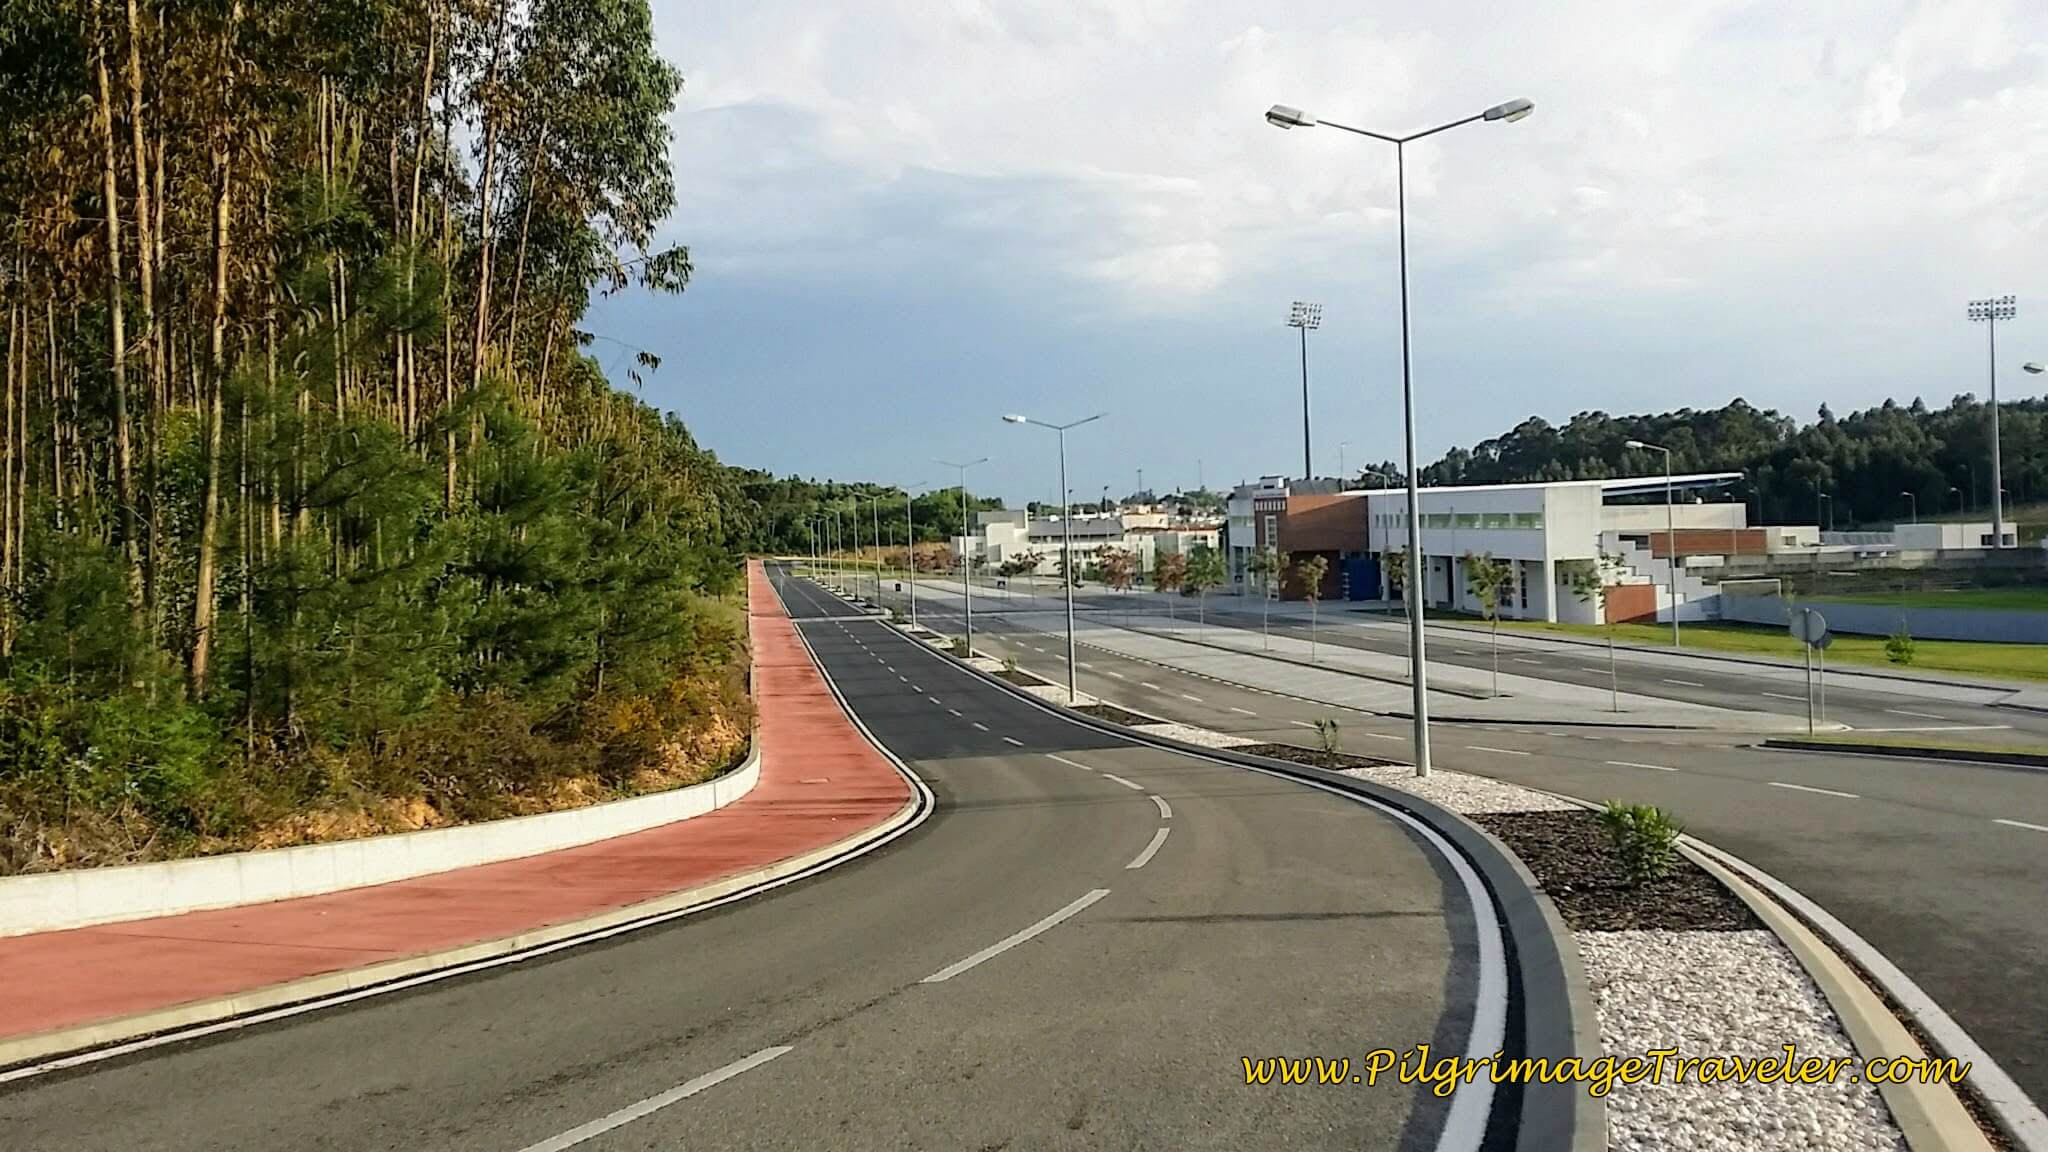 Around the Sports Complex of Anadia to the West on the Camino Portugués